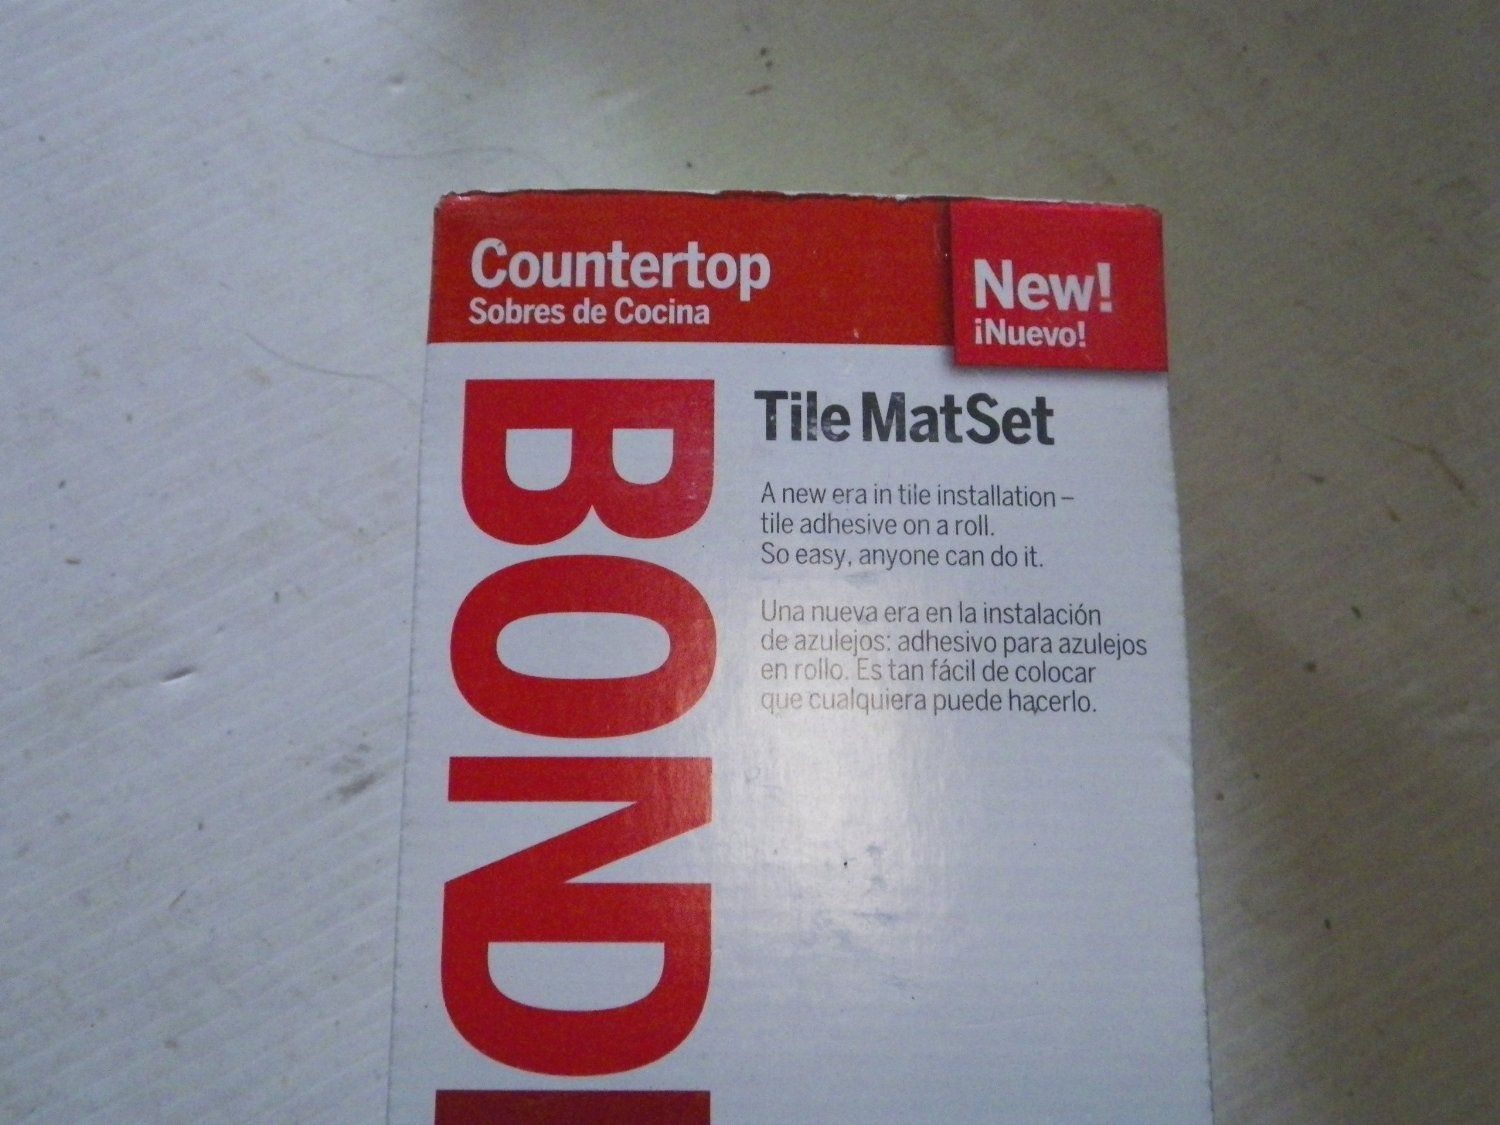 BONDERA 16-in Countertop Tile Mat Set Item#4330 Model#BON-CT-16 UPC#048444001689